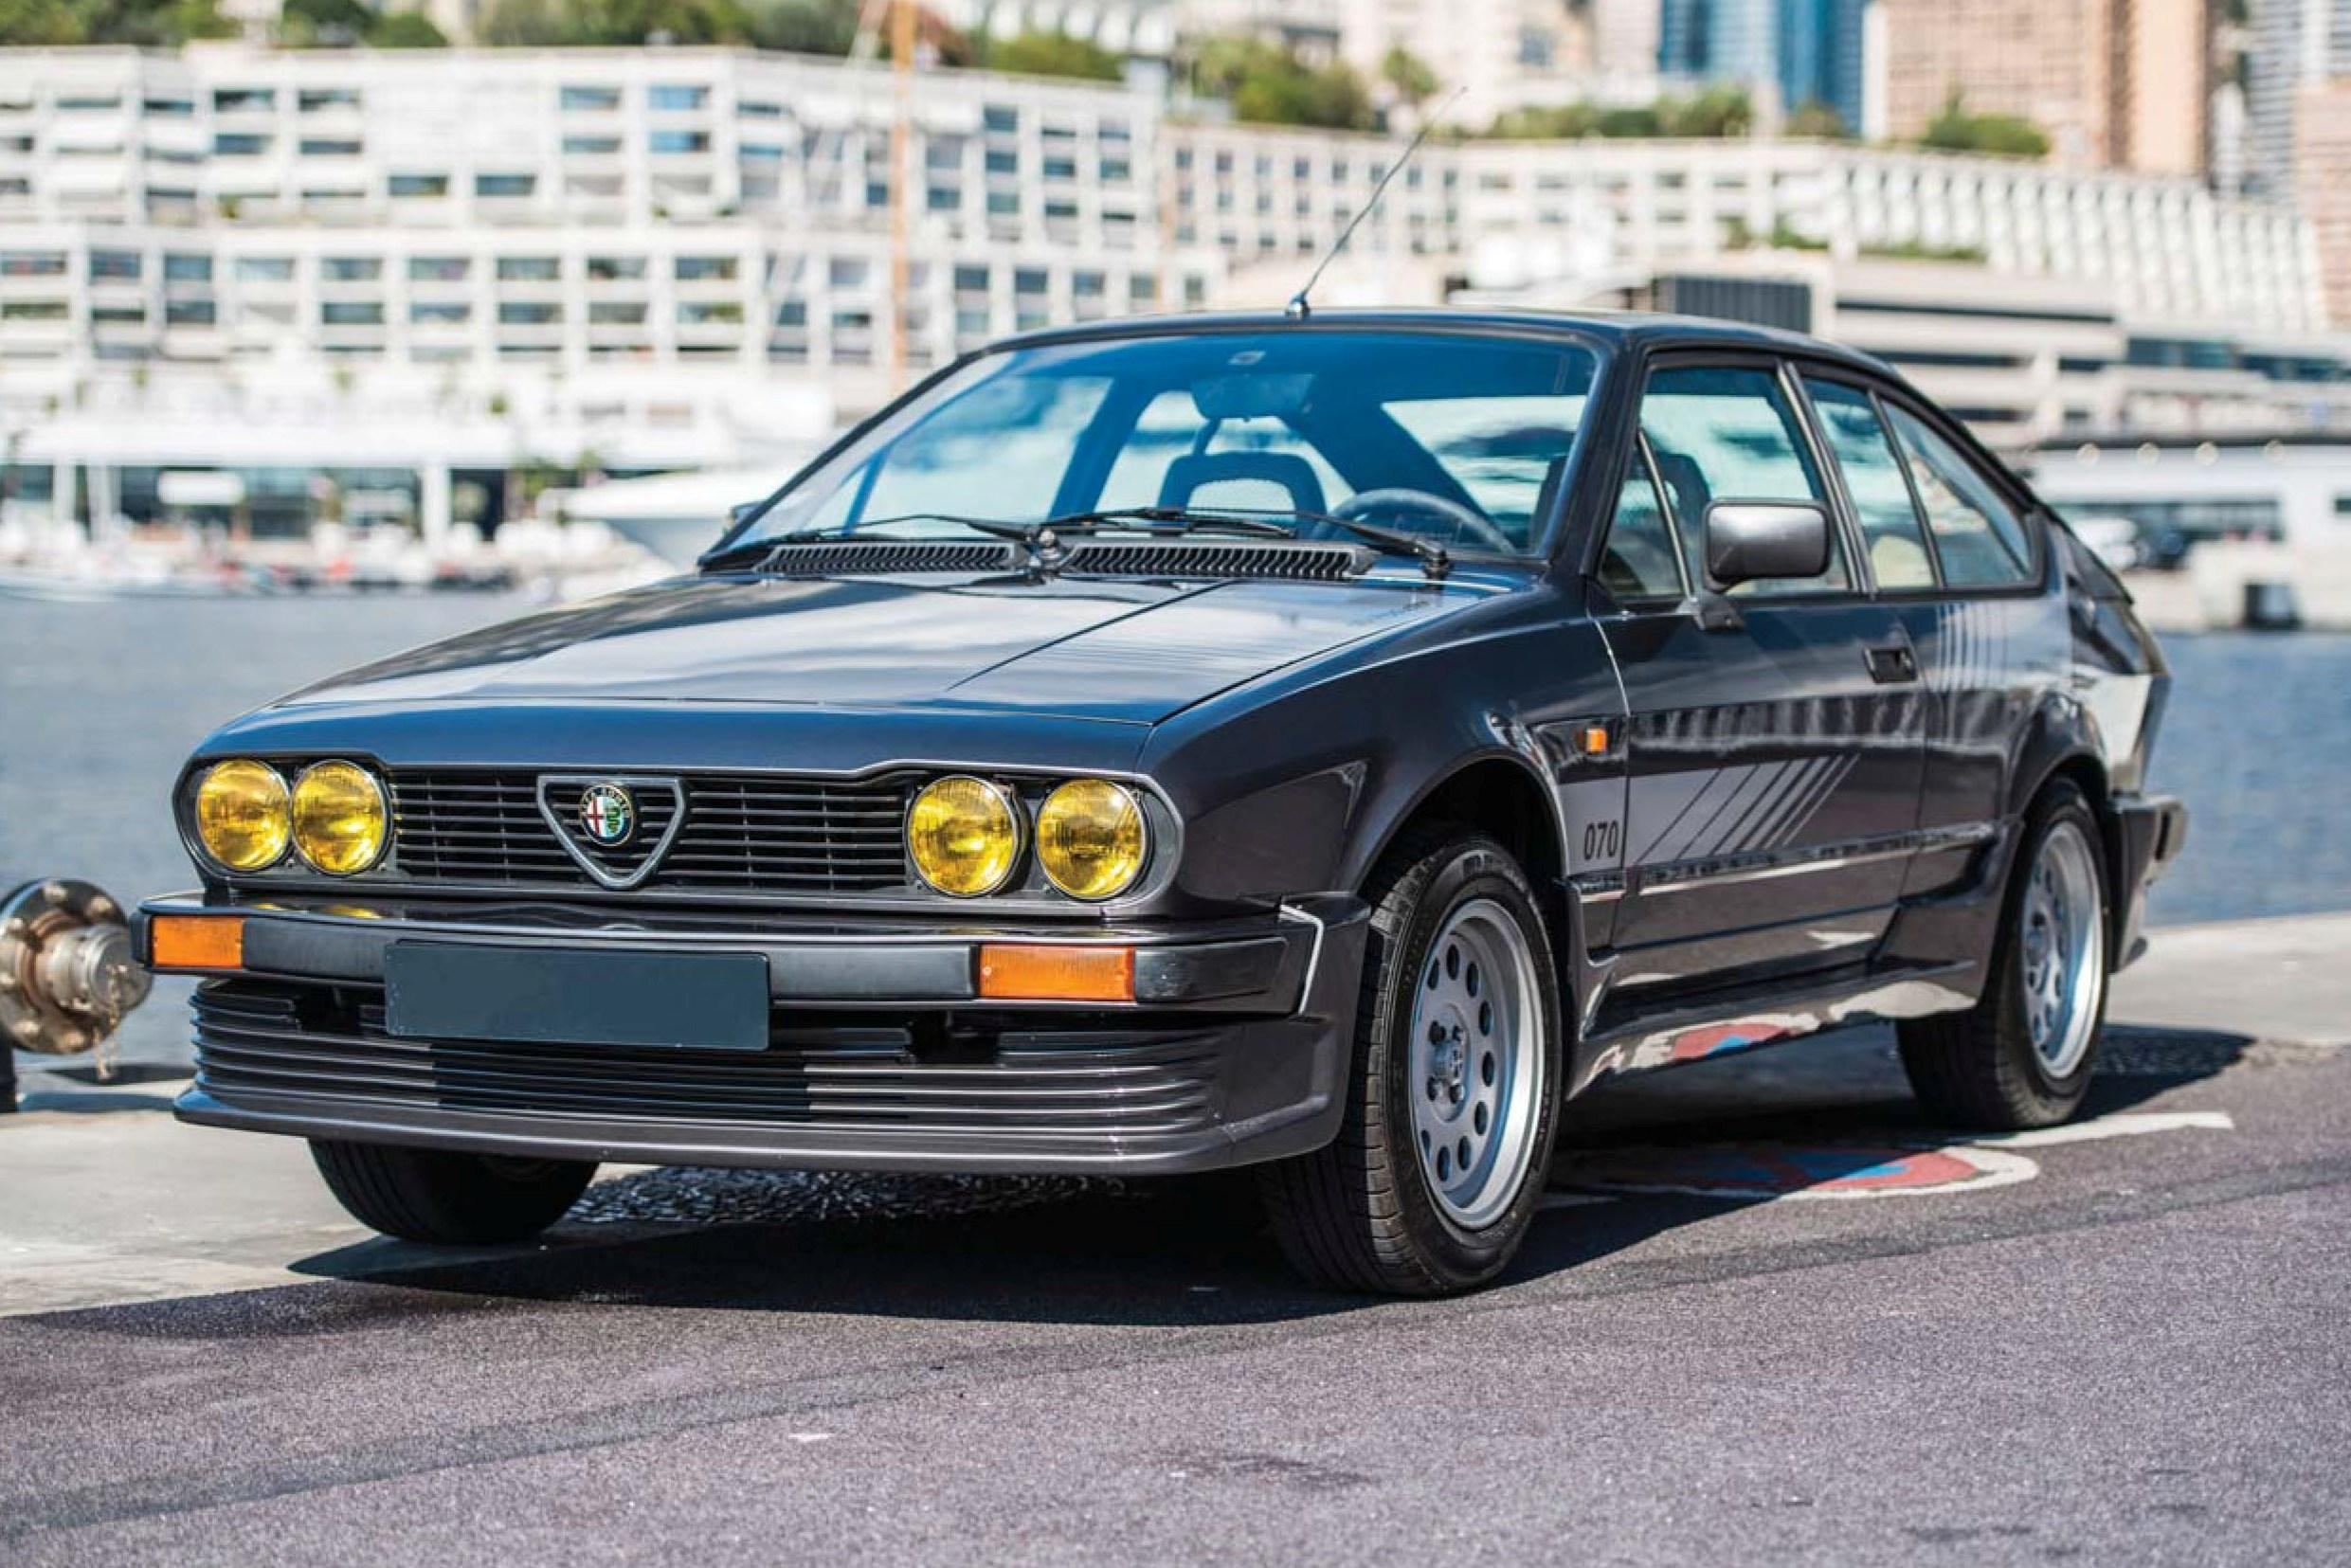 ALFA ROMEO ALFETTA-GTV PRODUCTION 2.0 1983